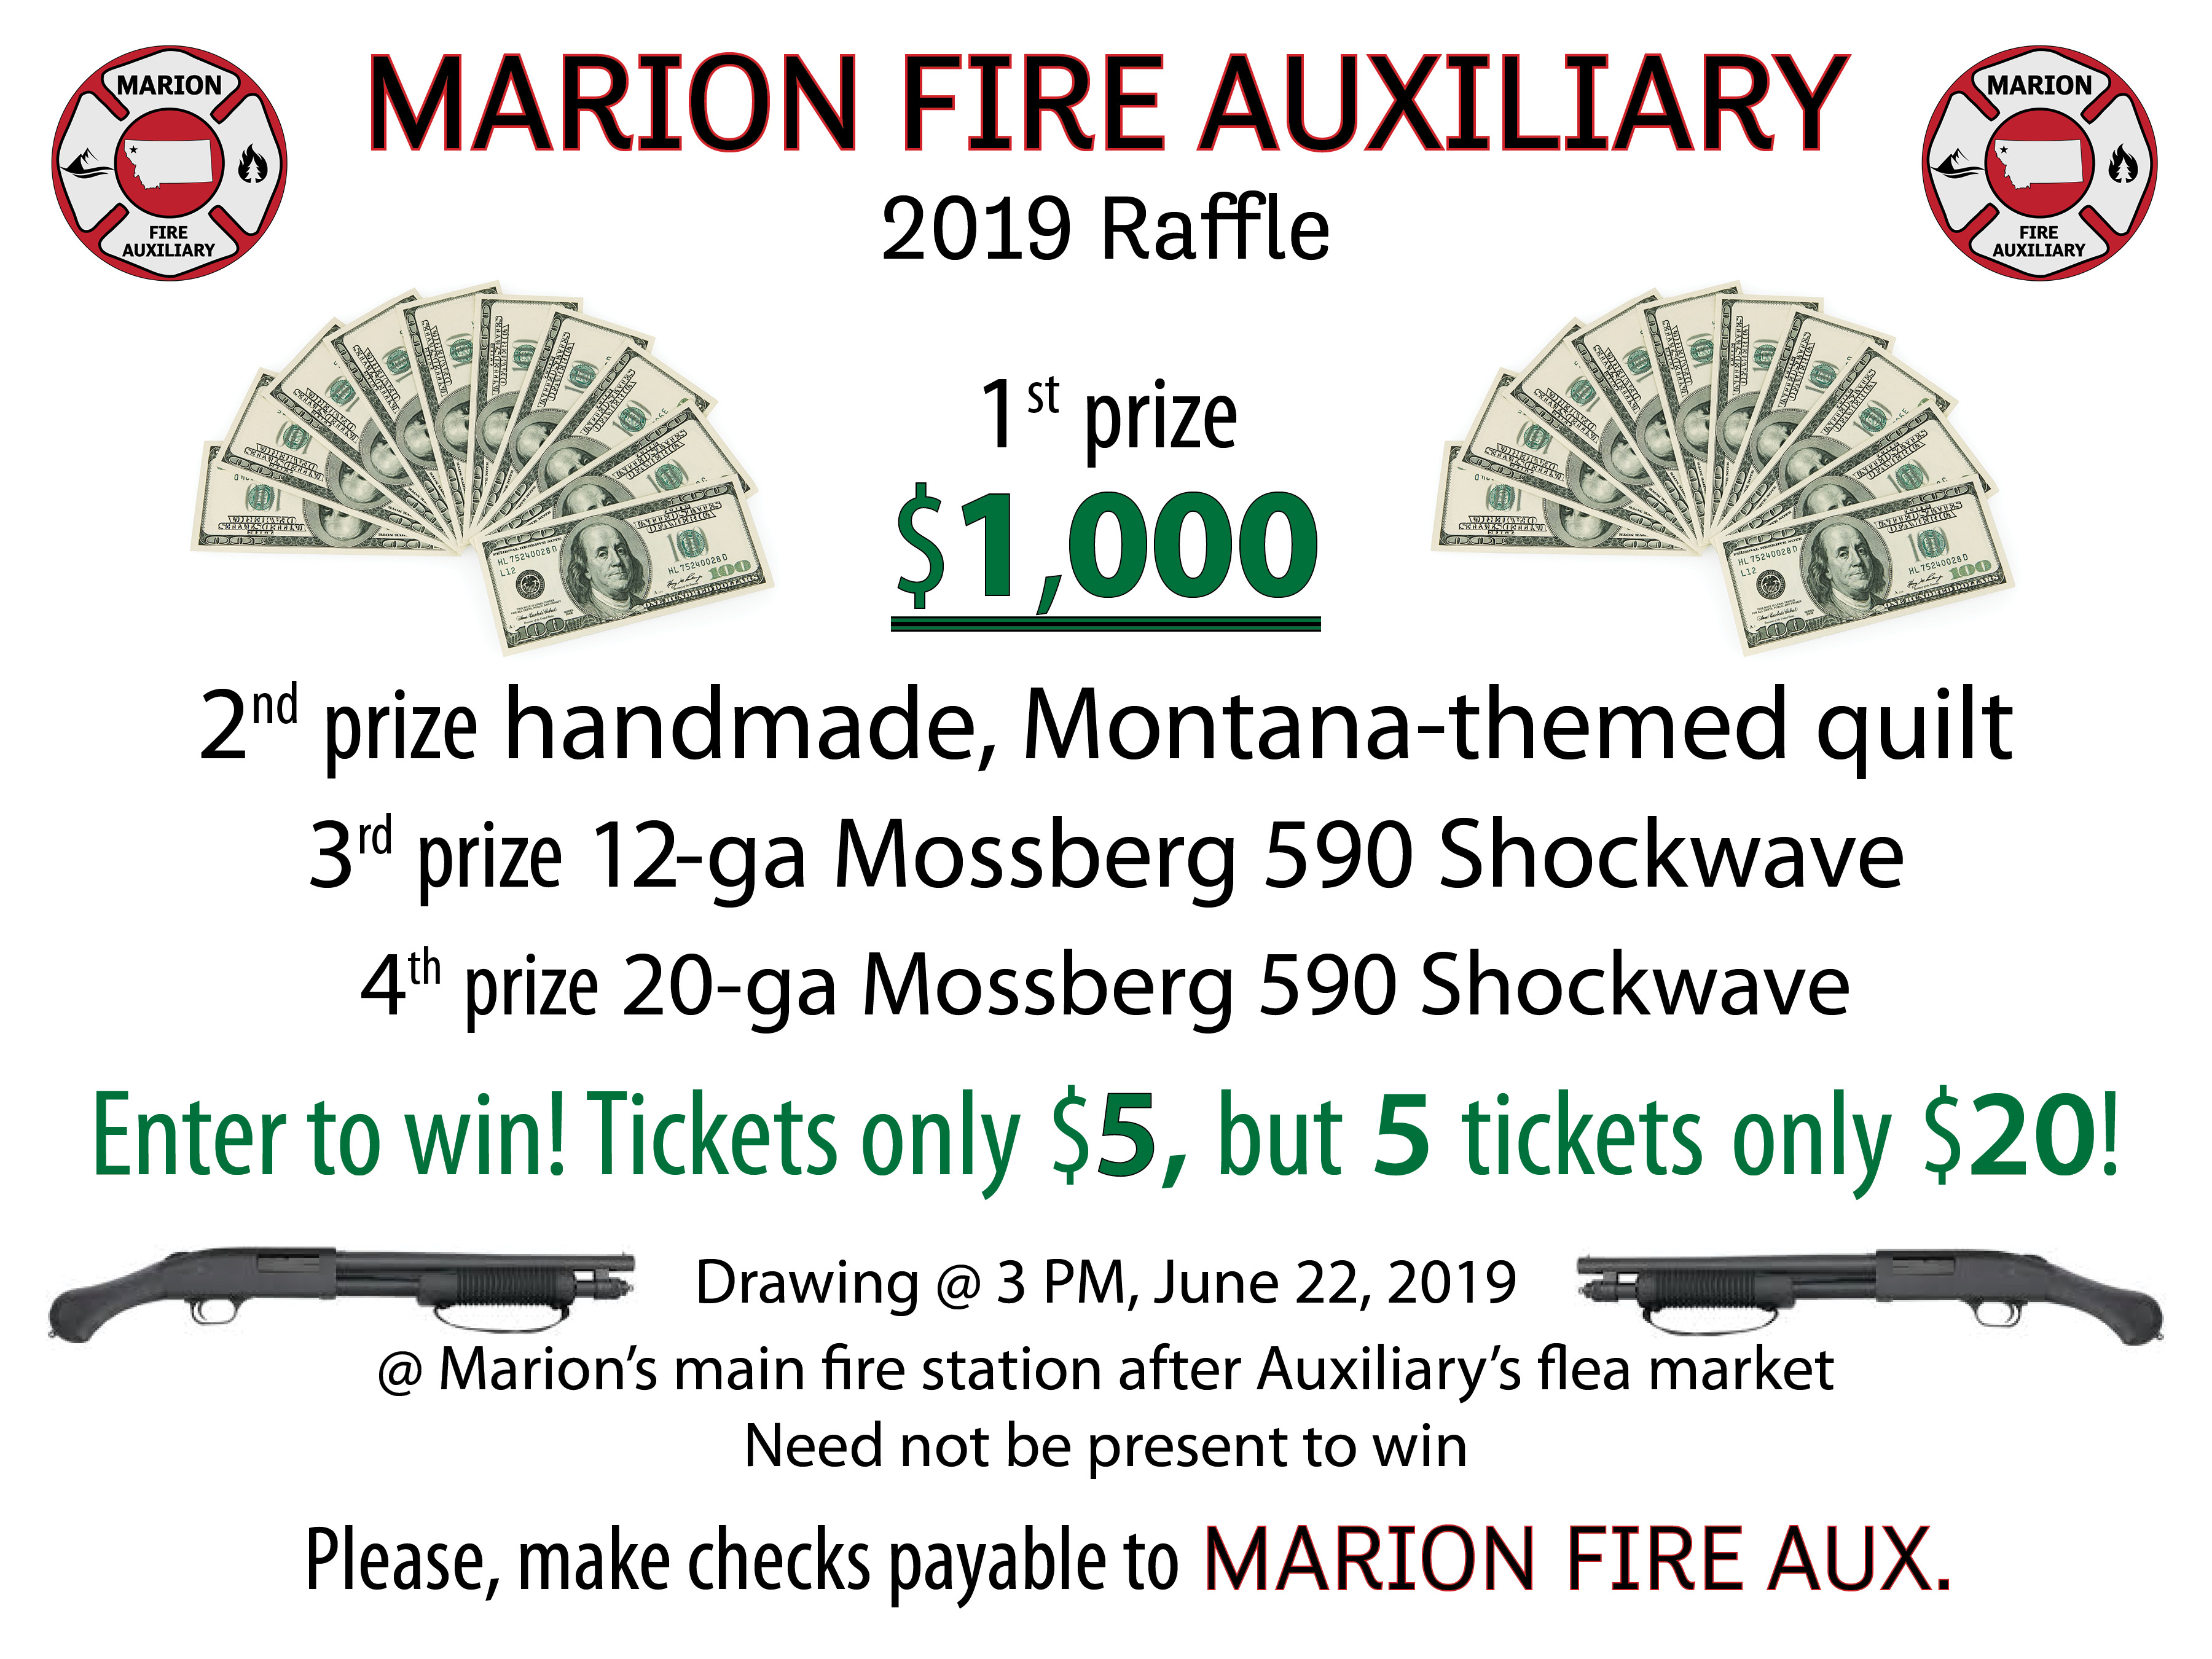 Prizes offered for Auxiliary's 2019 raffle: $1,000, quilt, firearms